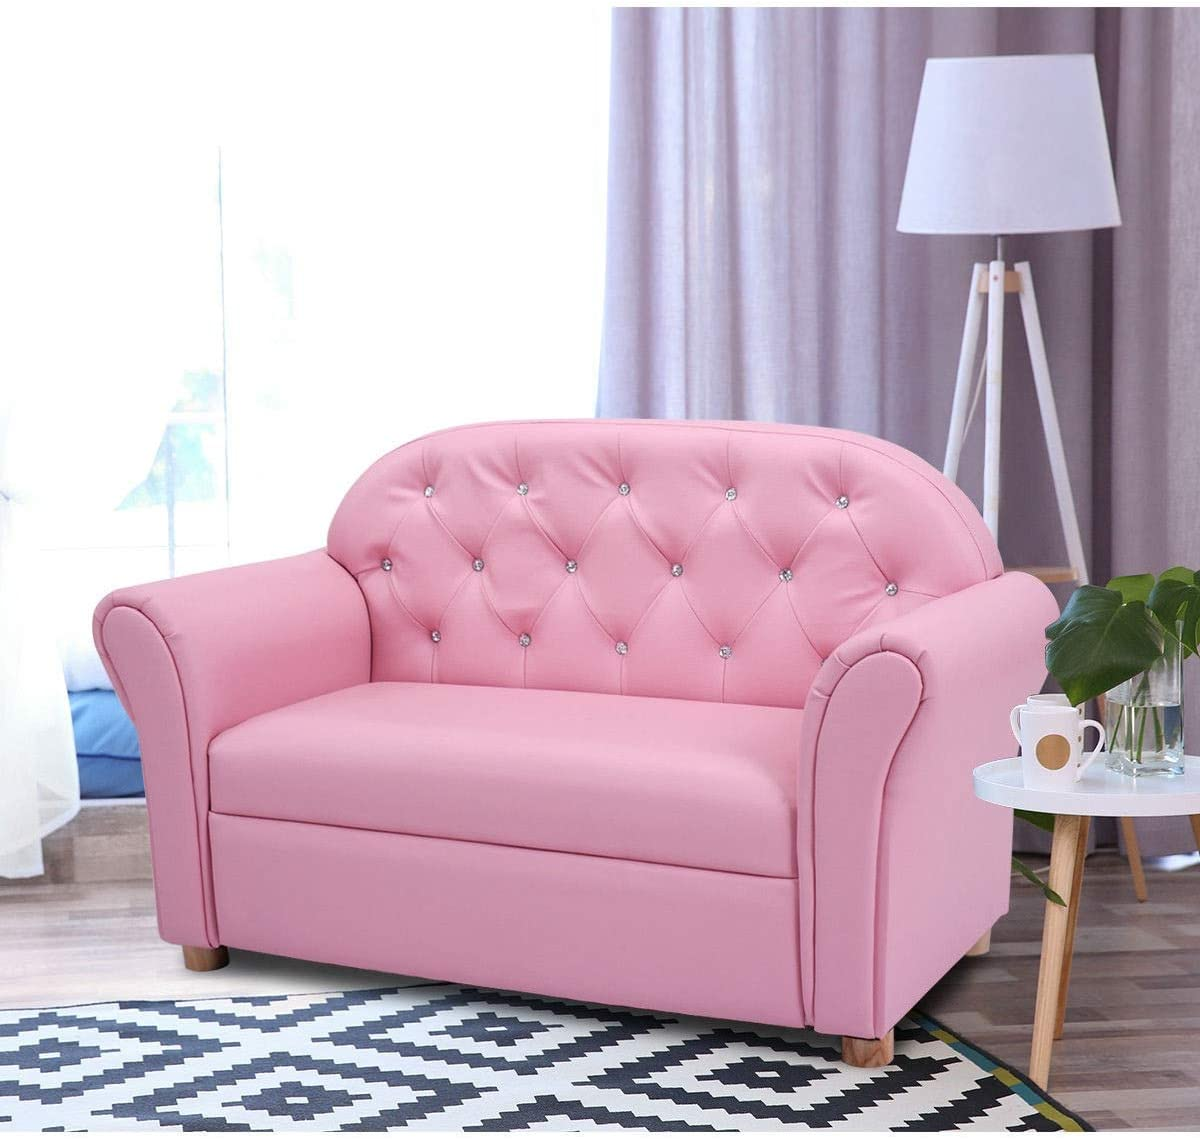 Free Shipping New Kids Sofa Loveseat Princess Styles Armrest Lounge Chair Cou 5 popular